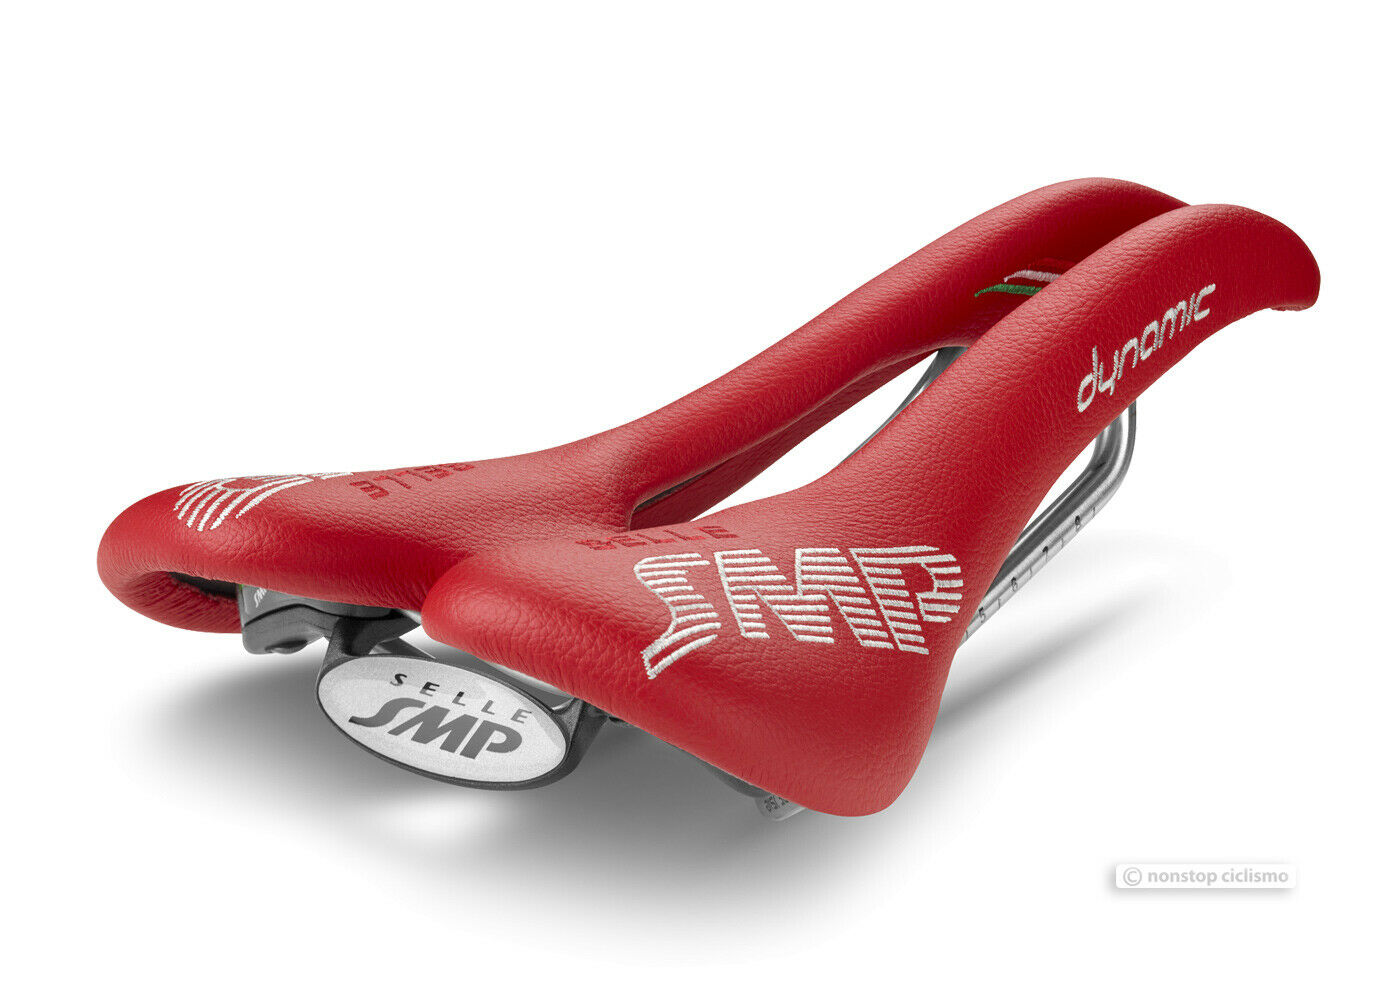 NEW 2019 Selle SMP DYNAMIC Bicycle Saddle SMP4BIKE Bike  Seat   RED  counter genuine